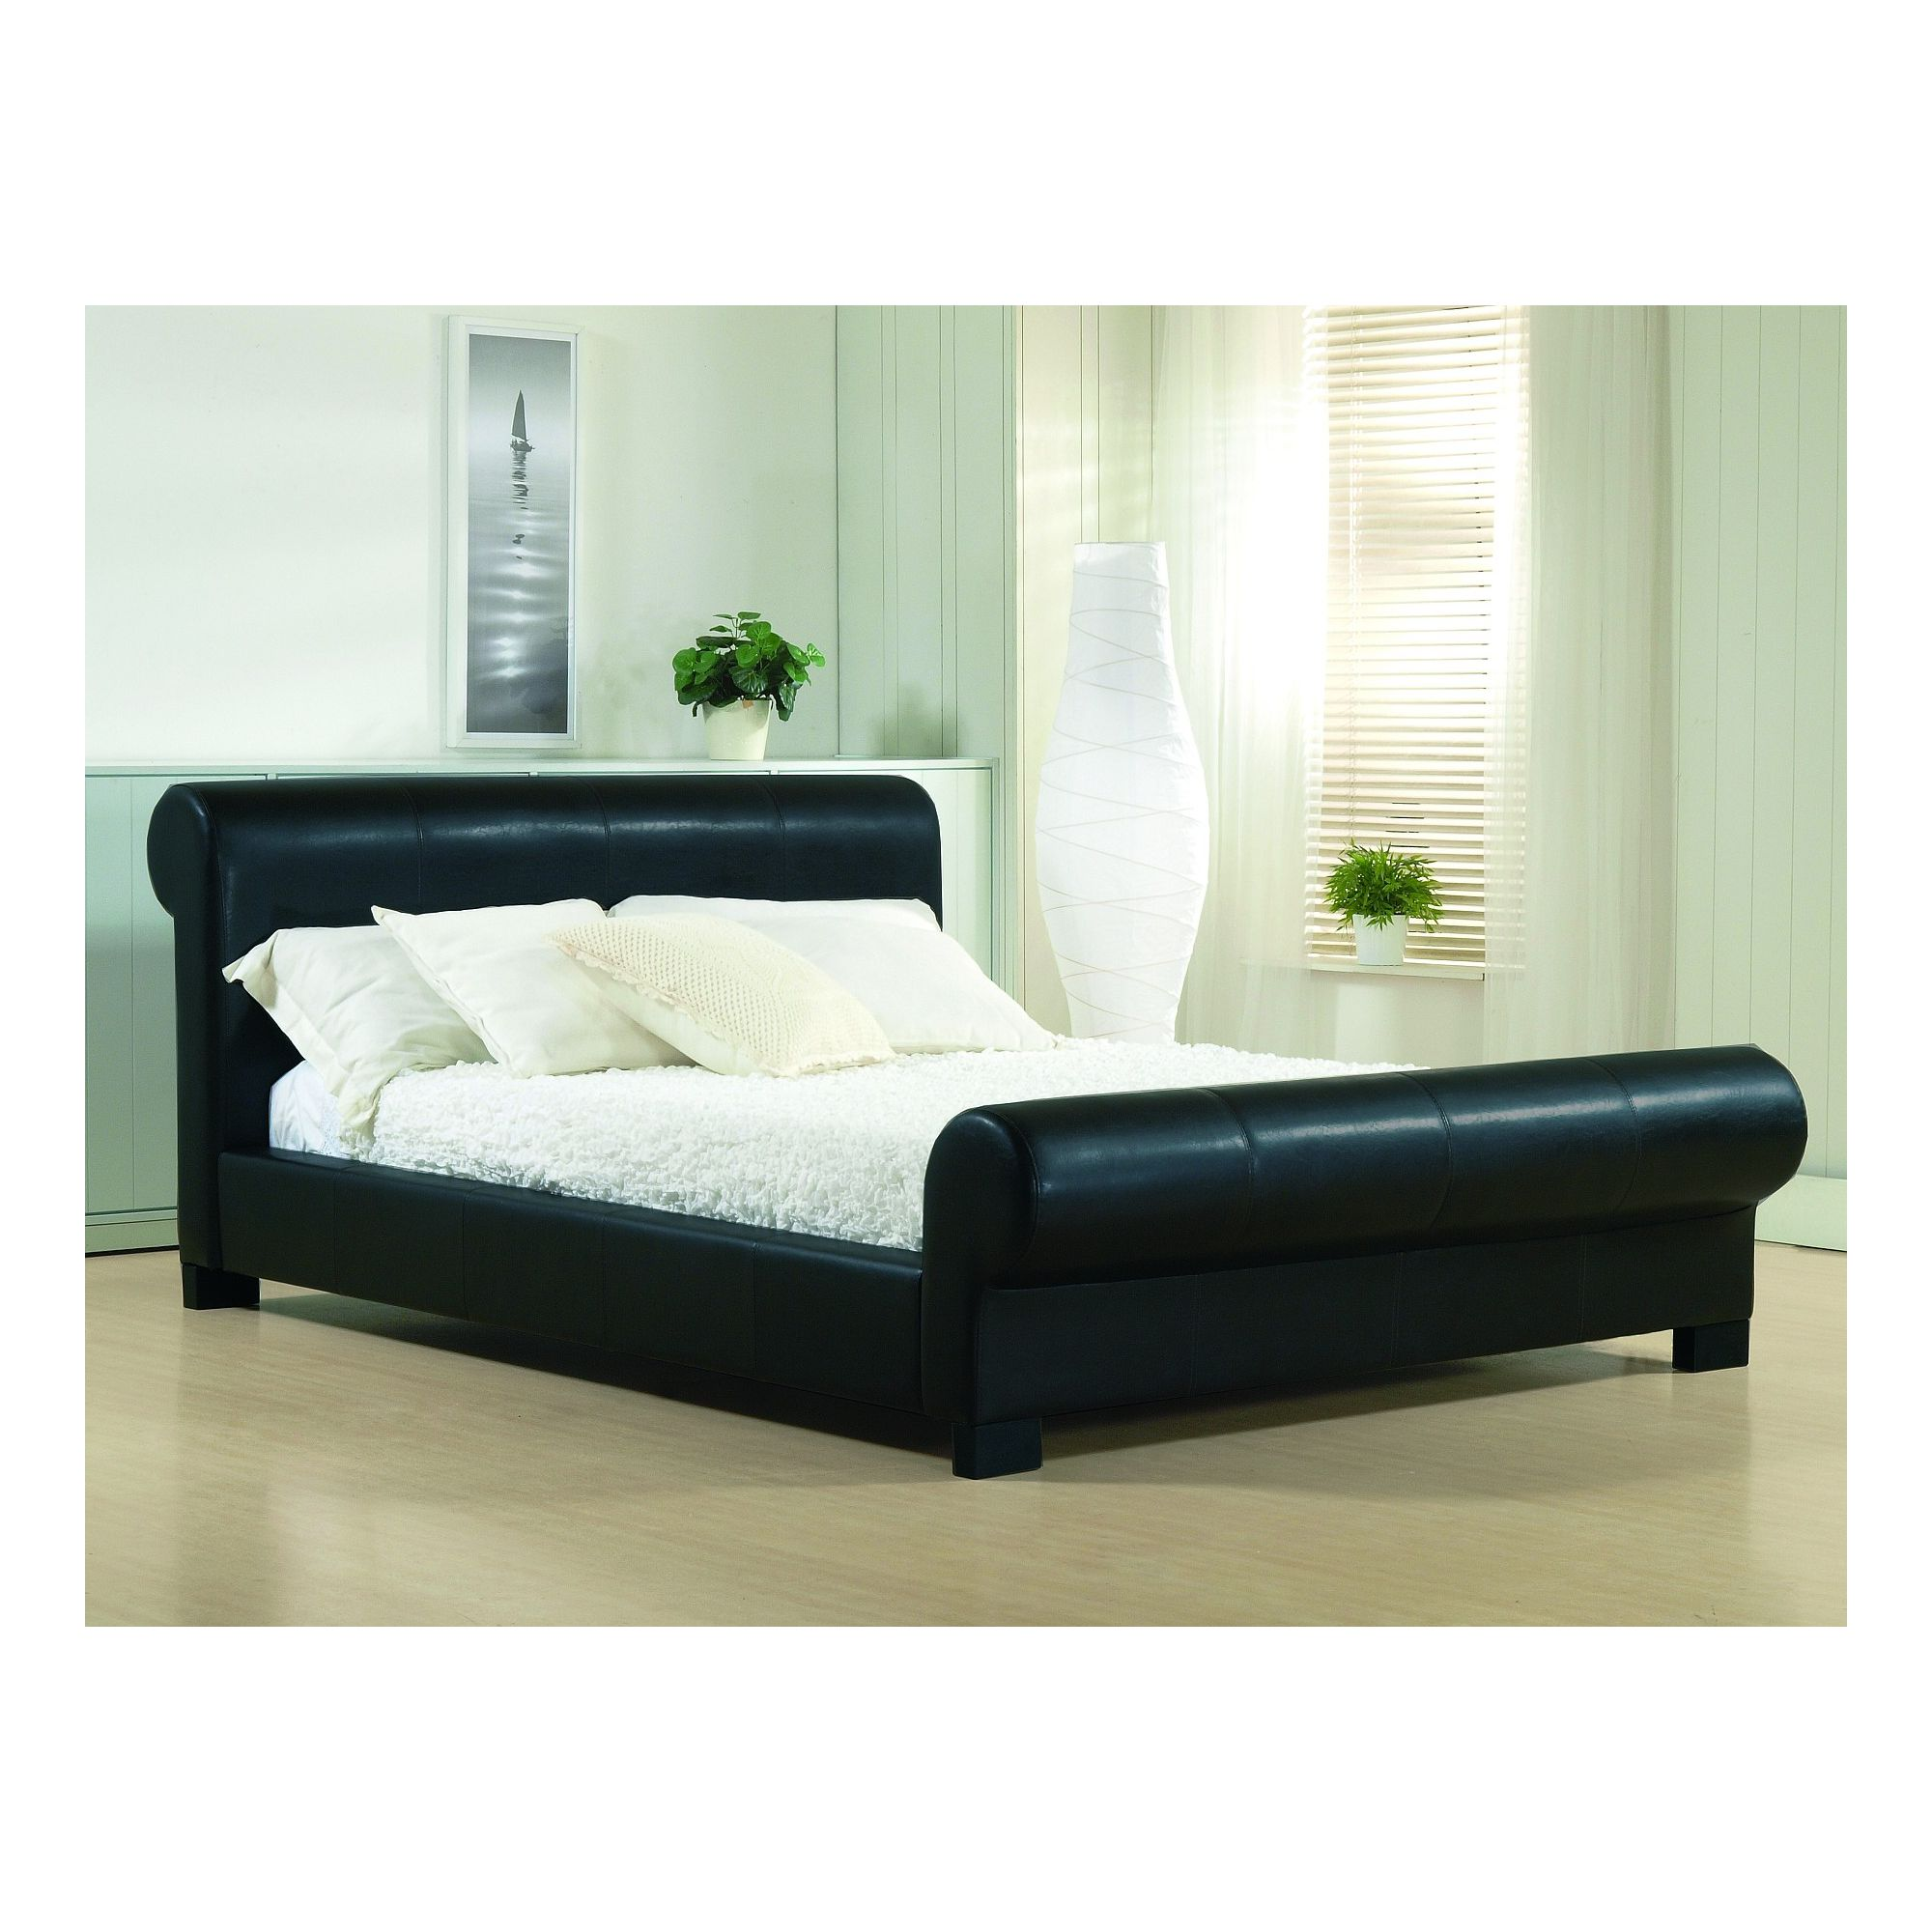 Altruna Valencia Faux Leather Bed Frame - King - Black at Tesco Direct